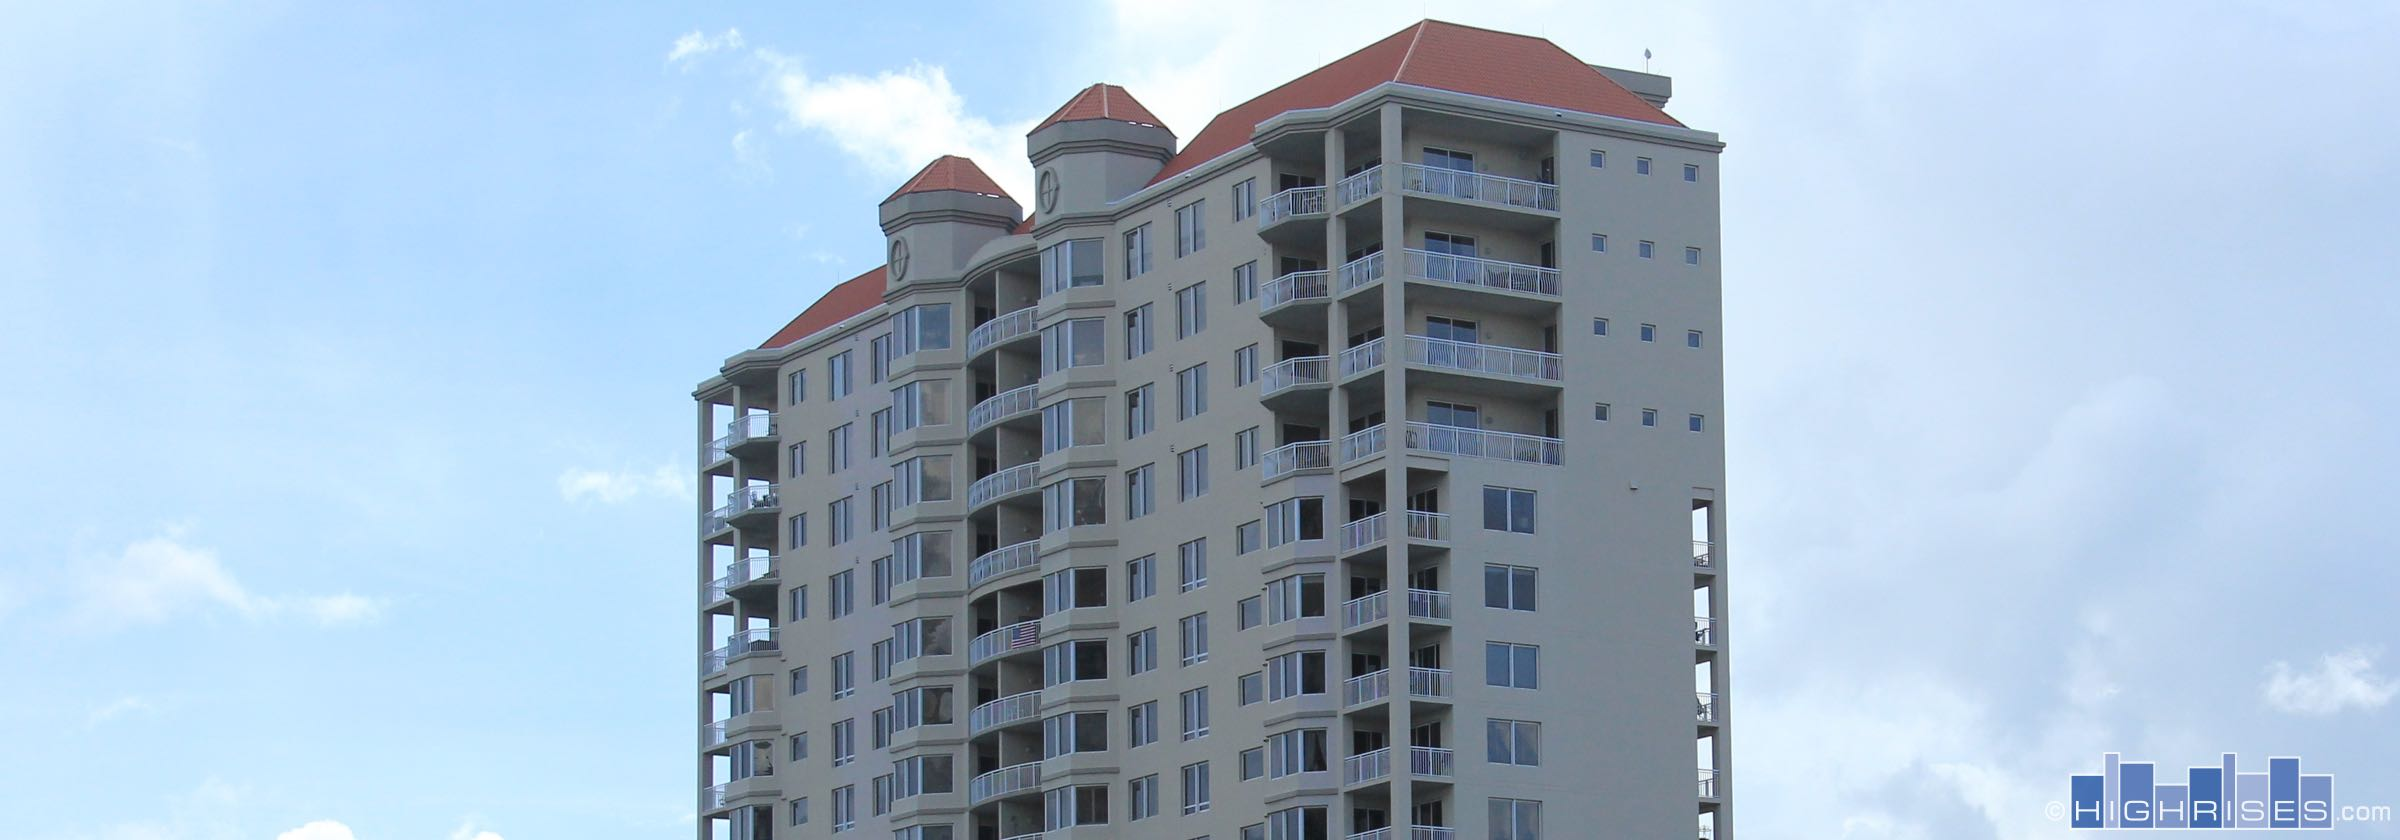 Grandview Condos Of Tampa Fl 371 Channelside Walk Way